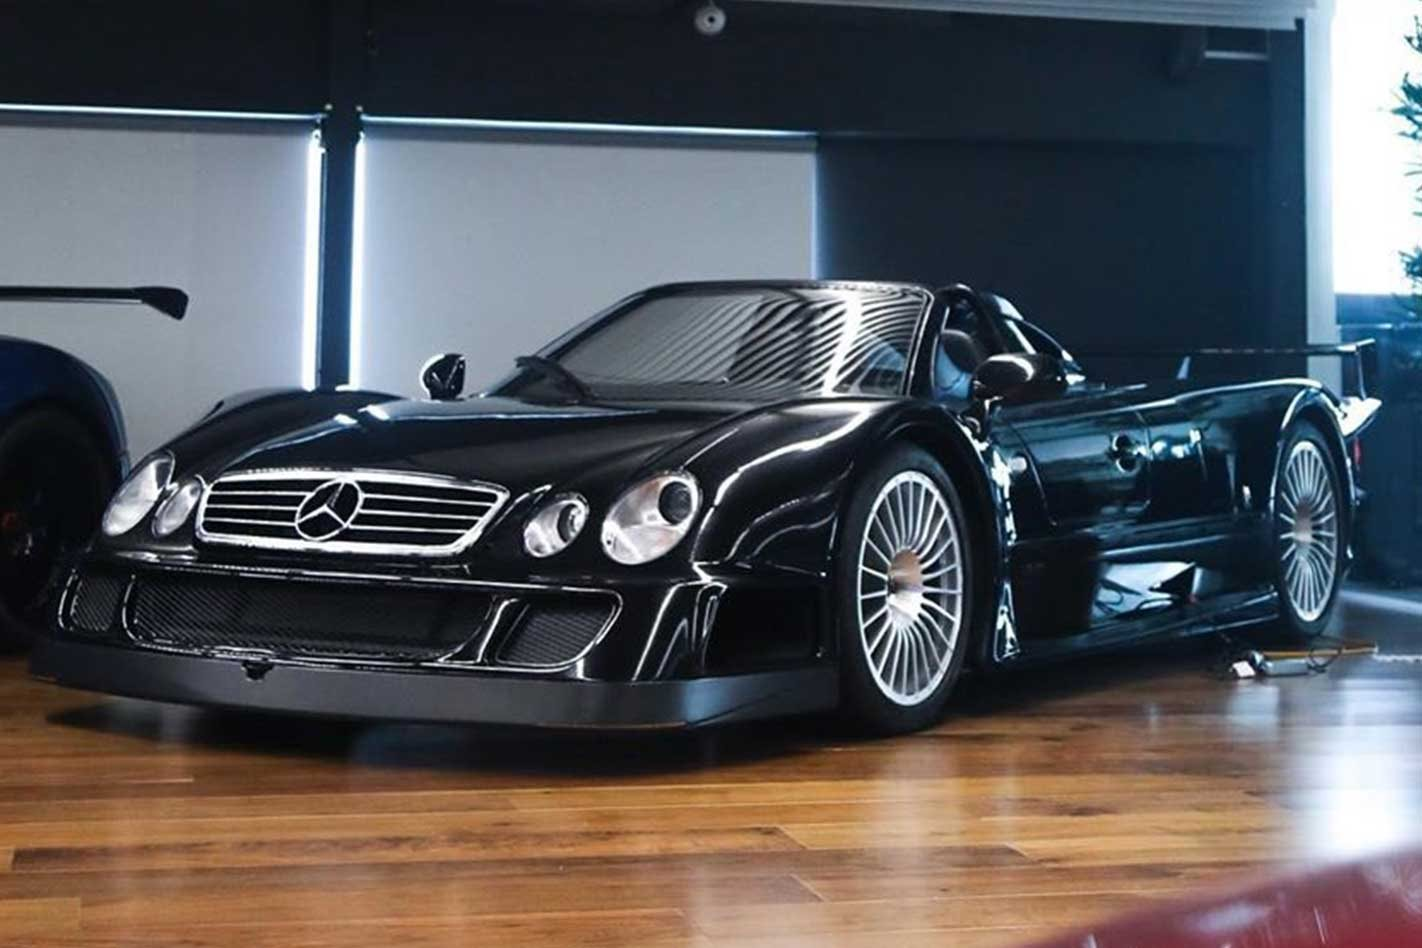 The only black Mercedes CLK GTR Roadster is in Melbourne